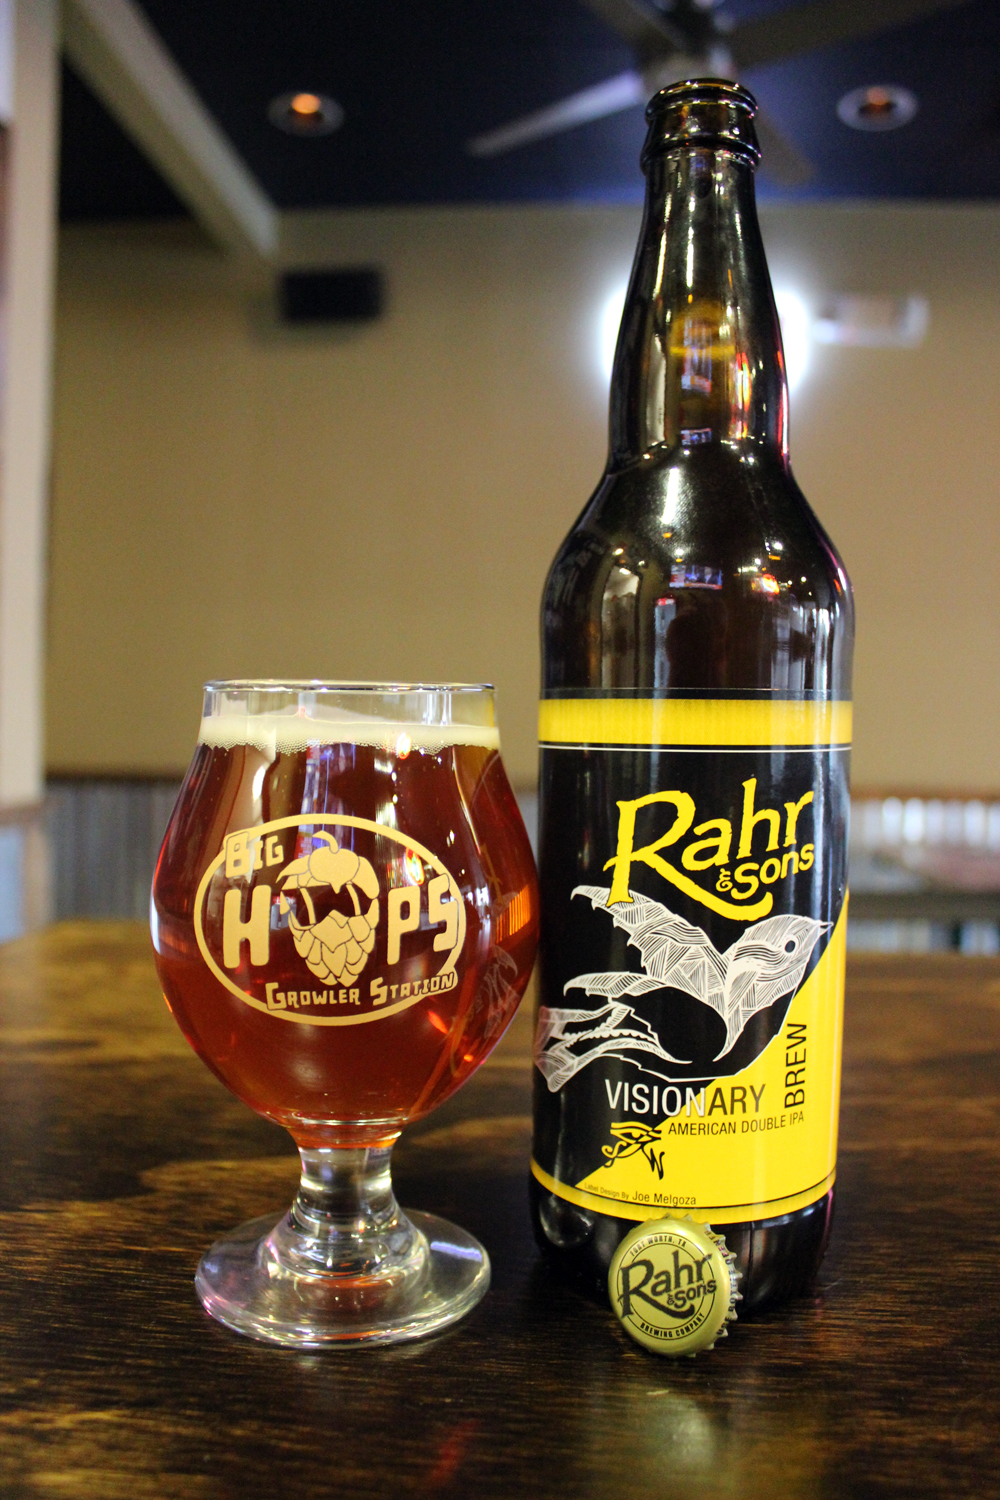 Rahr Brewery Tour Review